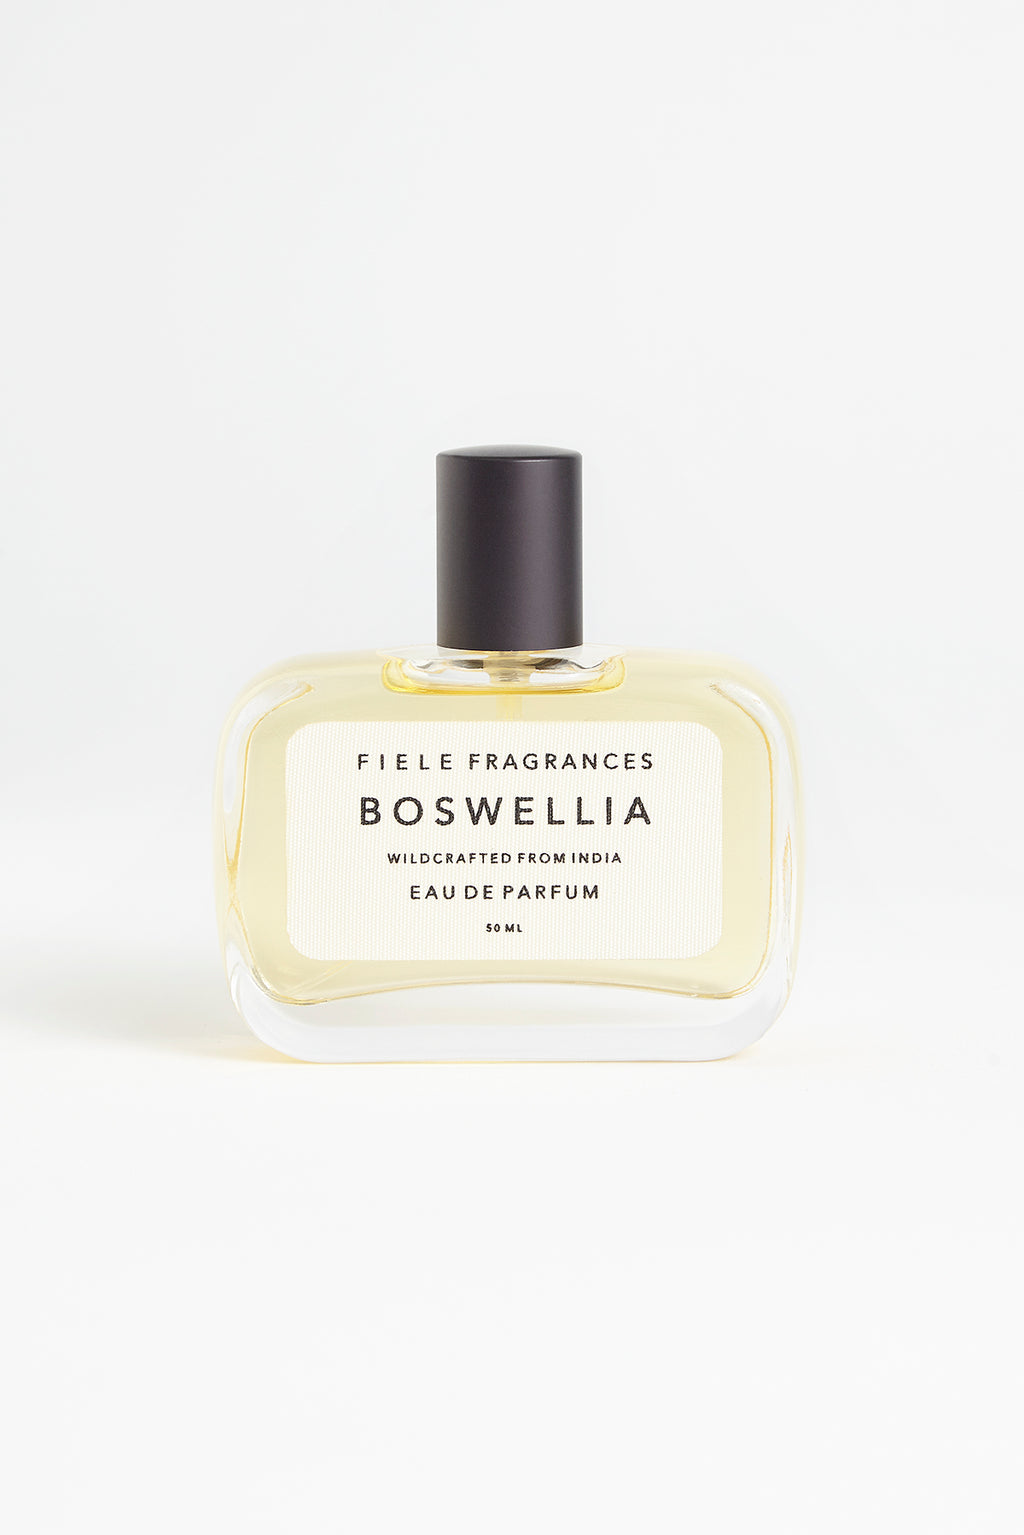 FIELE FRAGRANCE - BOSWELLIA